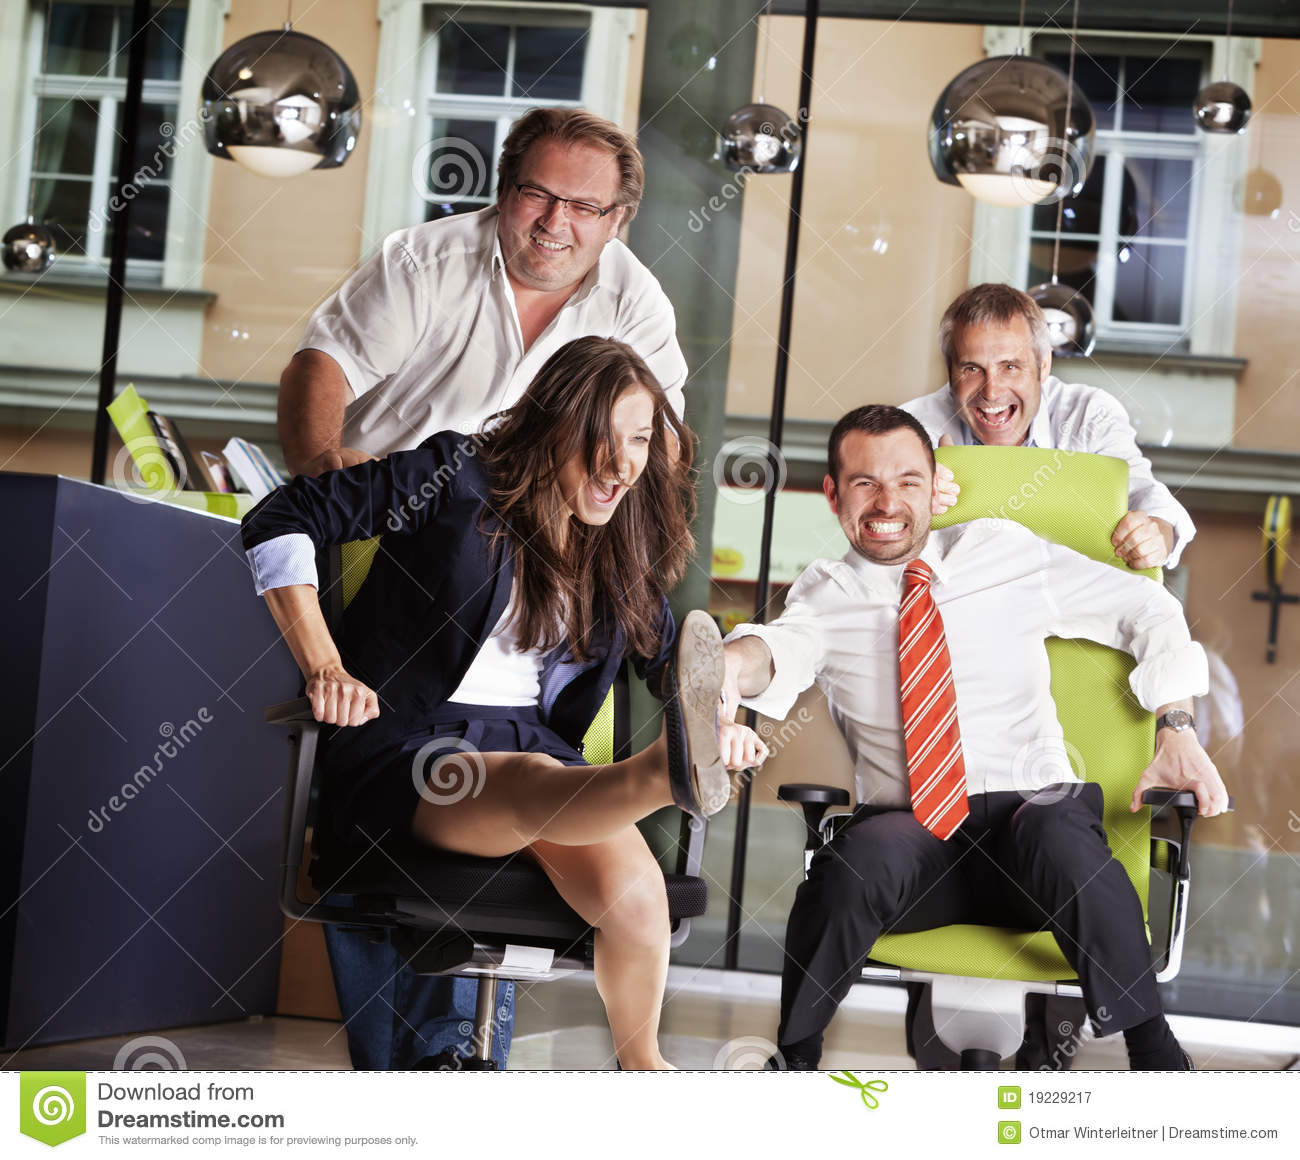 Download comp  sc 1 st  Dreamstime.com & Office chair race at work. stock image. Image of employees - 19229217